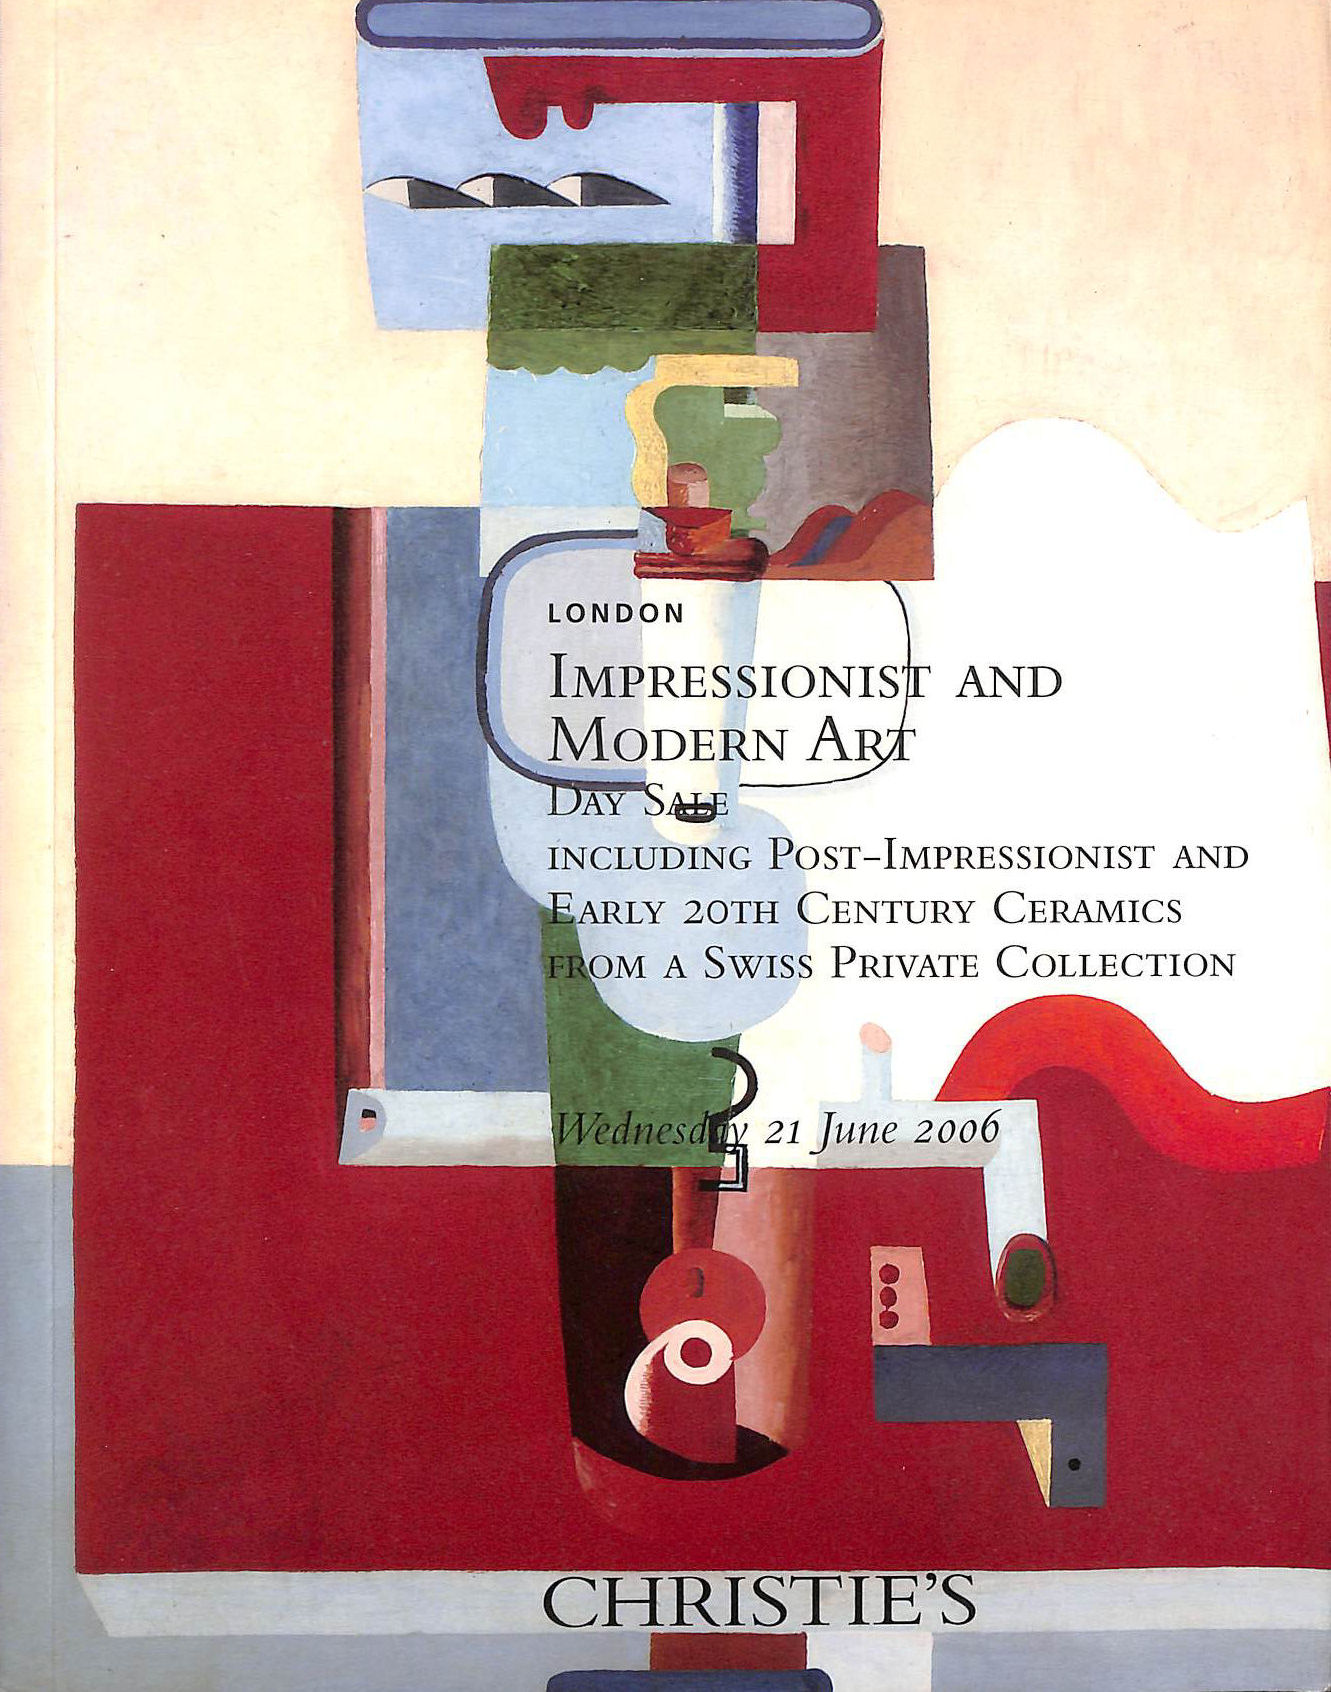 Image for Impressionist and Modern Art Including Post-Impressionist and Early 20th Century Ceramics from a Swiss Private Collection - Christie's London - 21 June 2006